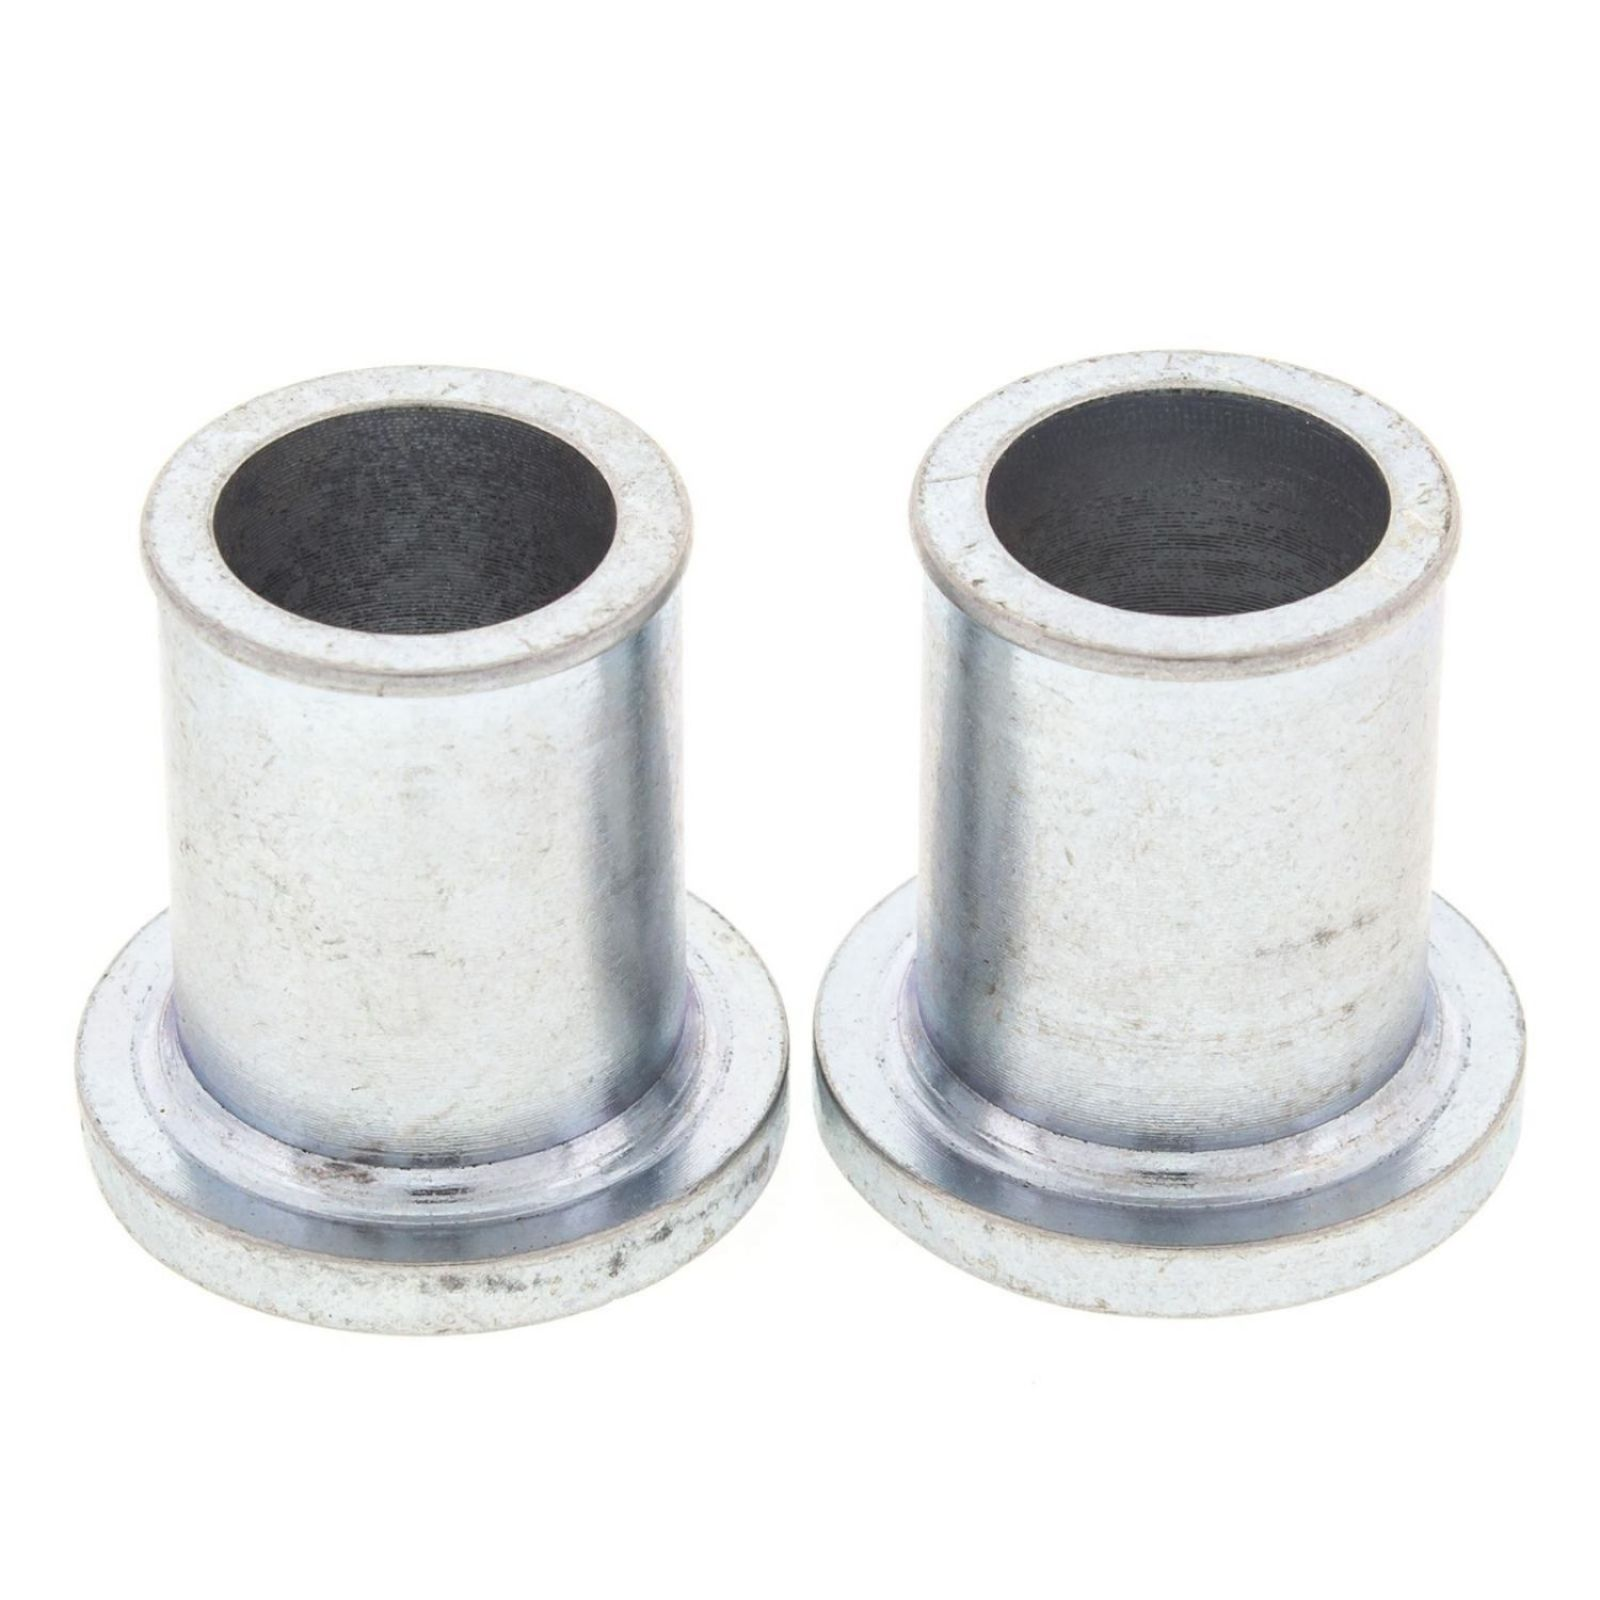 WRP Front Wheel Spacer Kits - WRP111065 image